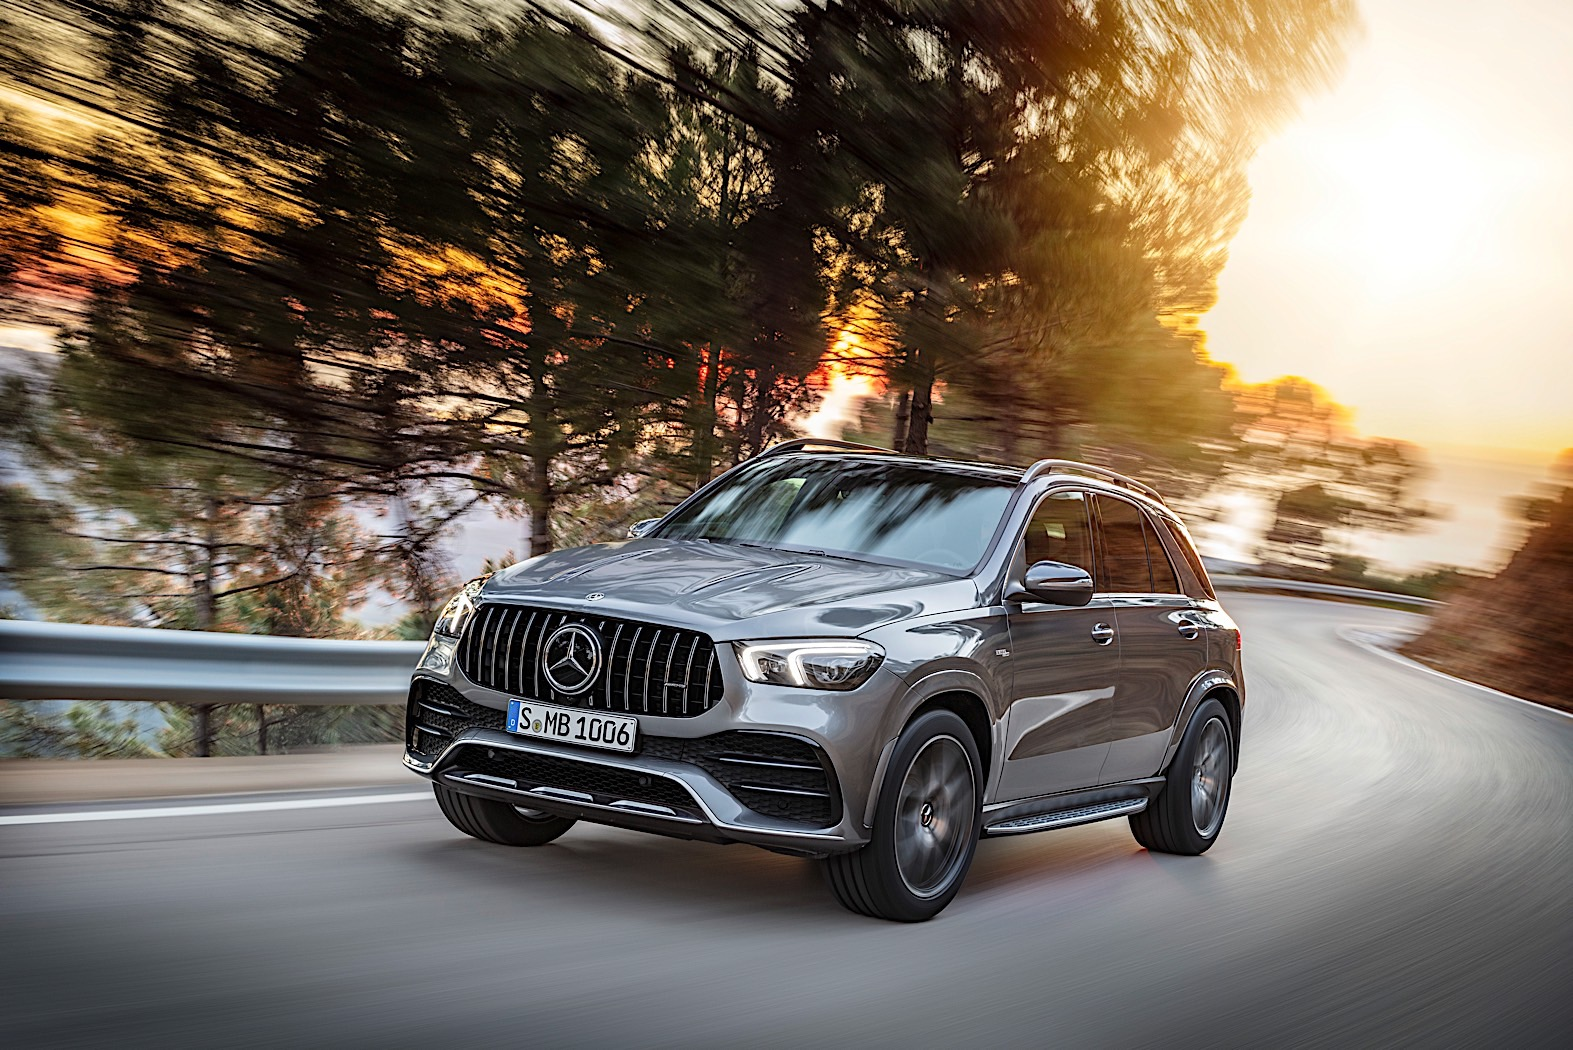 Mercedes-AMG GLE 53 4Matic+ updated with a 435hp in-line 6